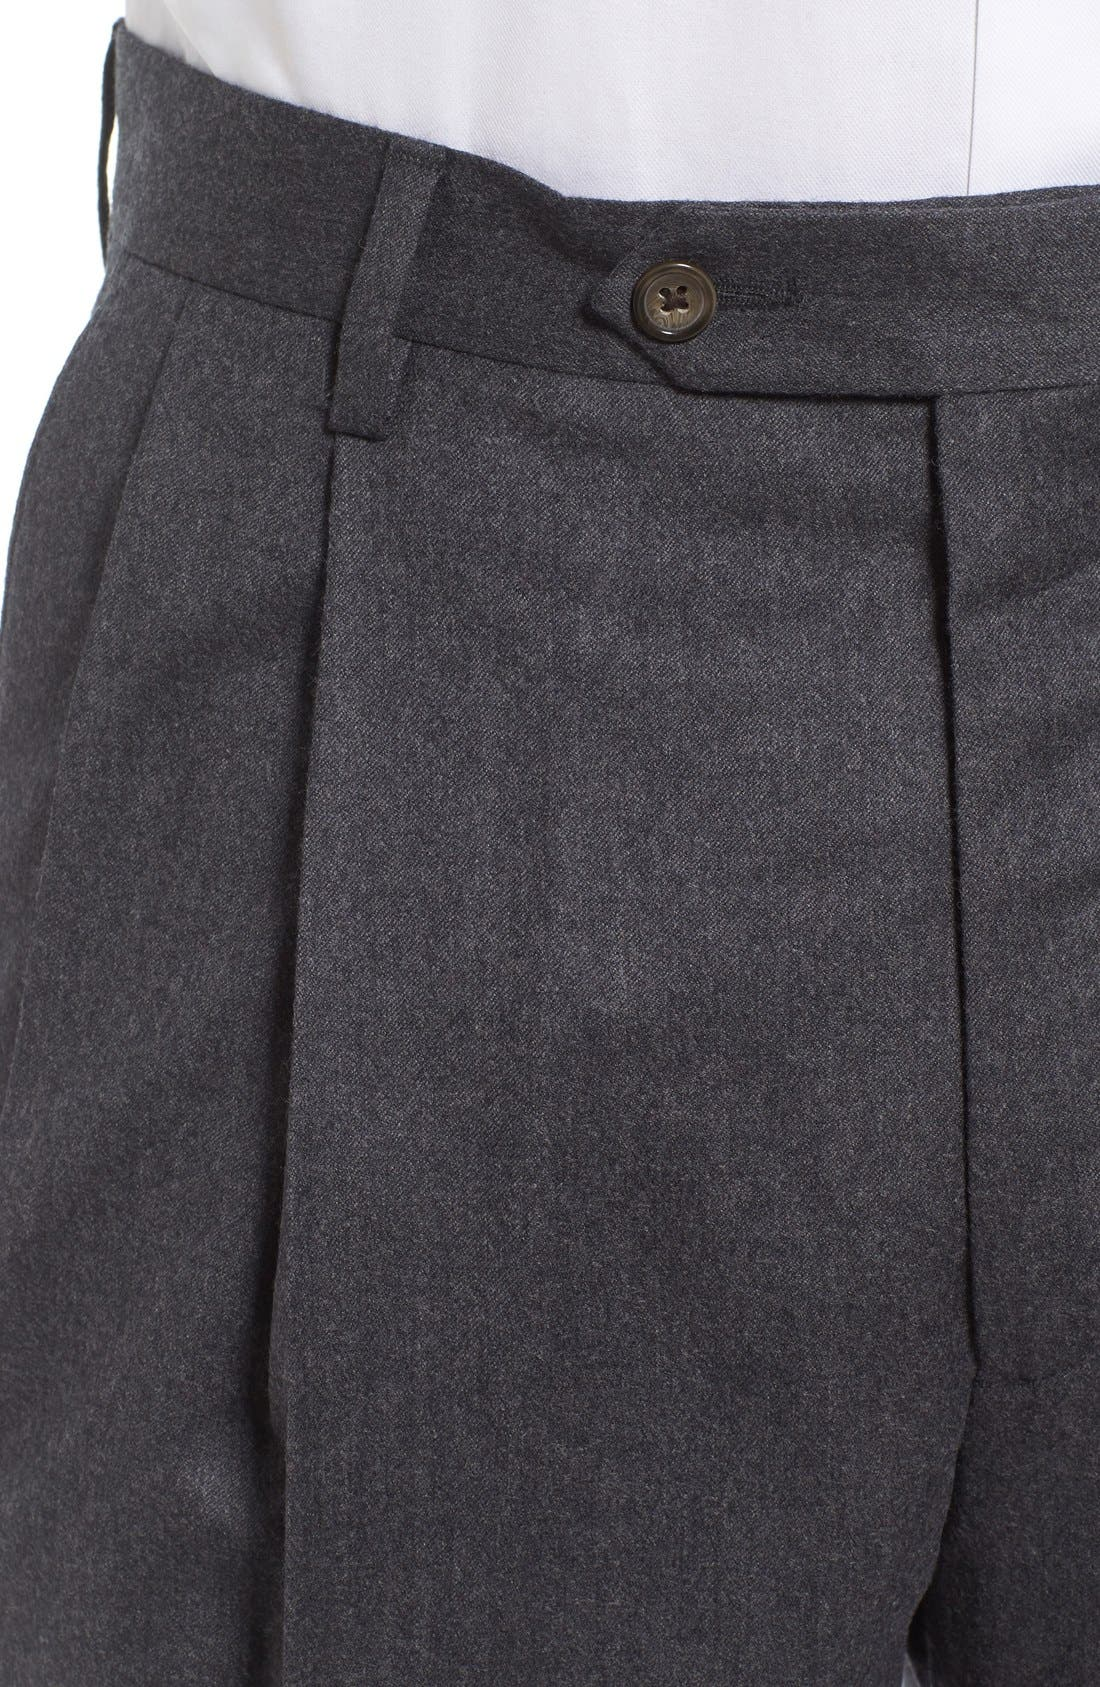 Pleated Solid Wool Trousers,                             Alternate thumbnail 4, color,                             Medium Grey